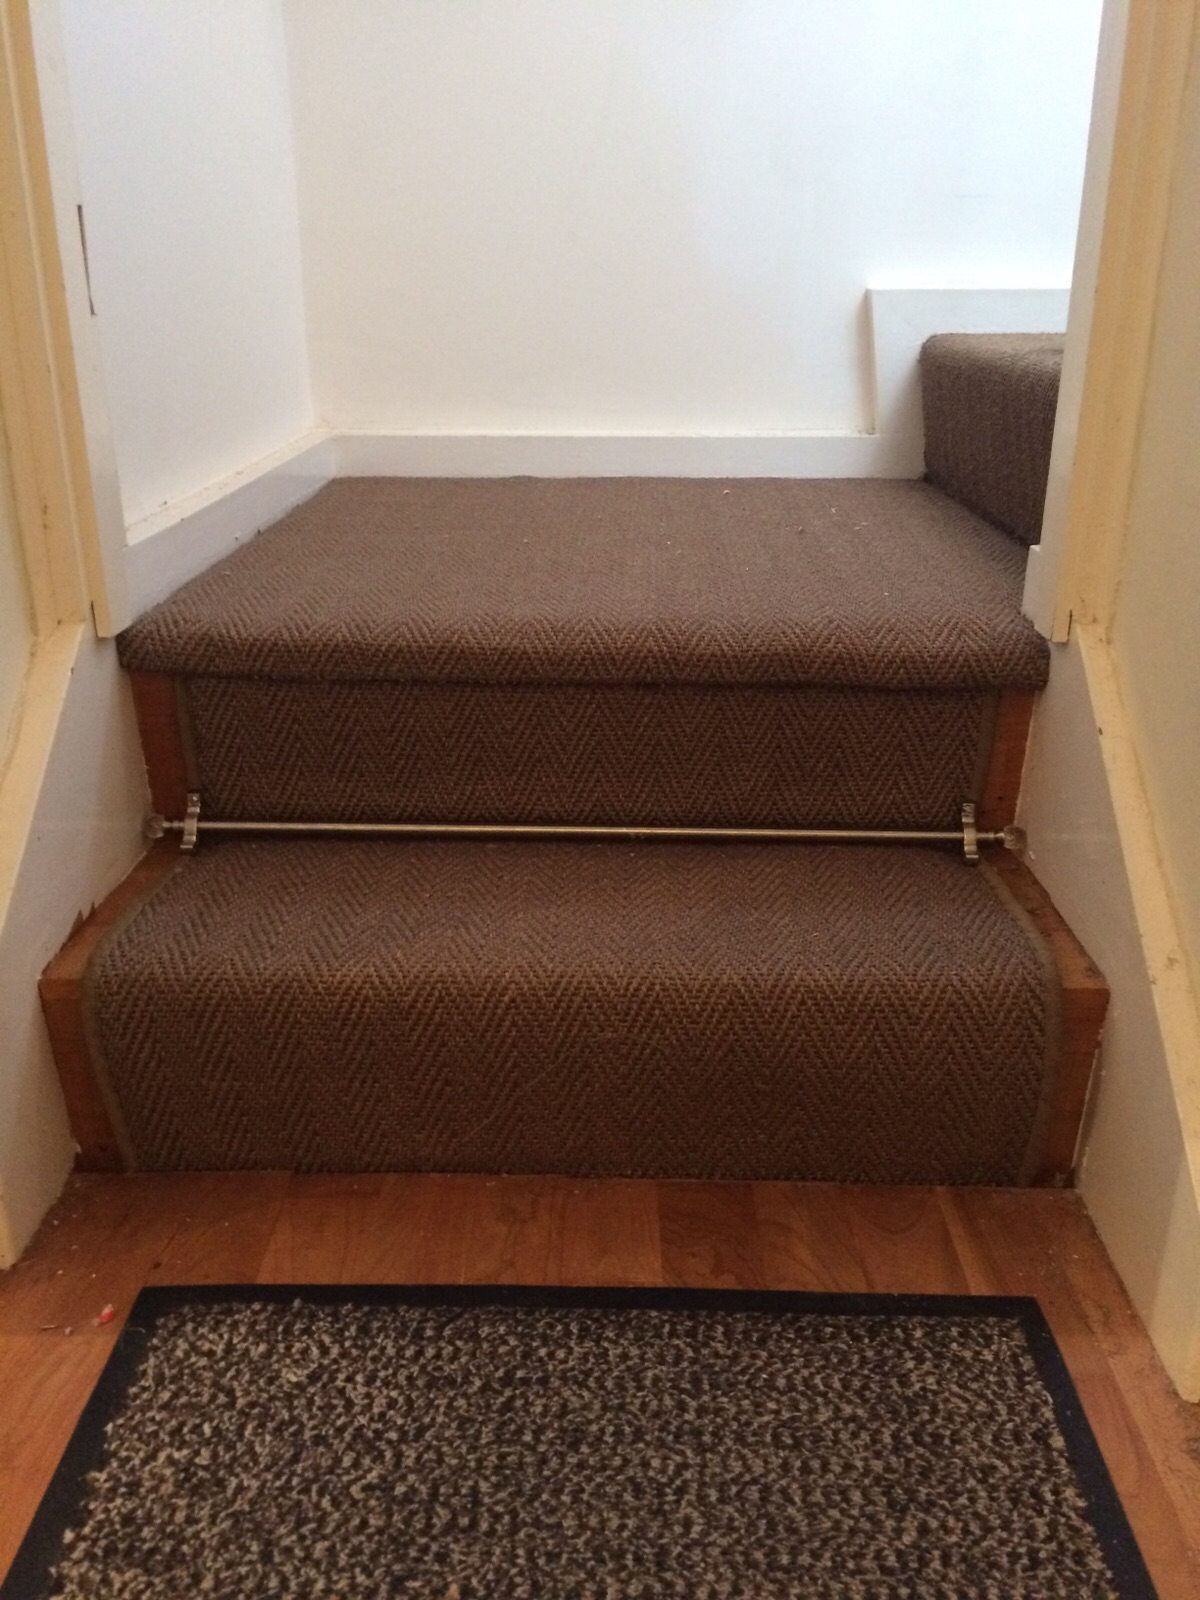 Alternative, Sisal Herringbone with Crystal Stair Rods (5).JPG